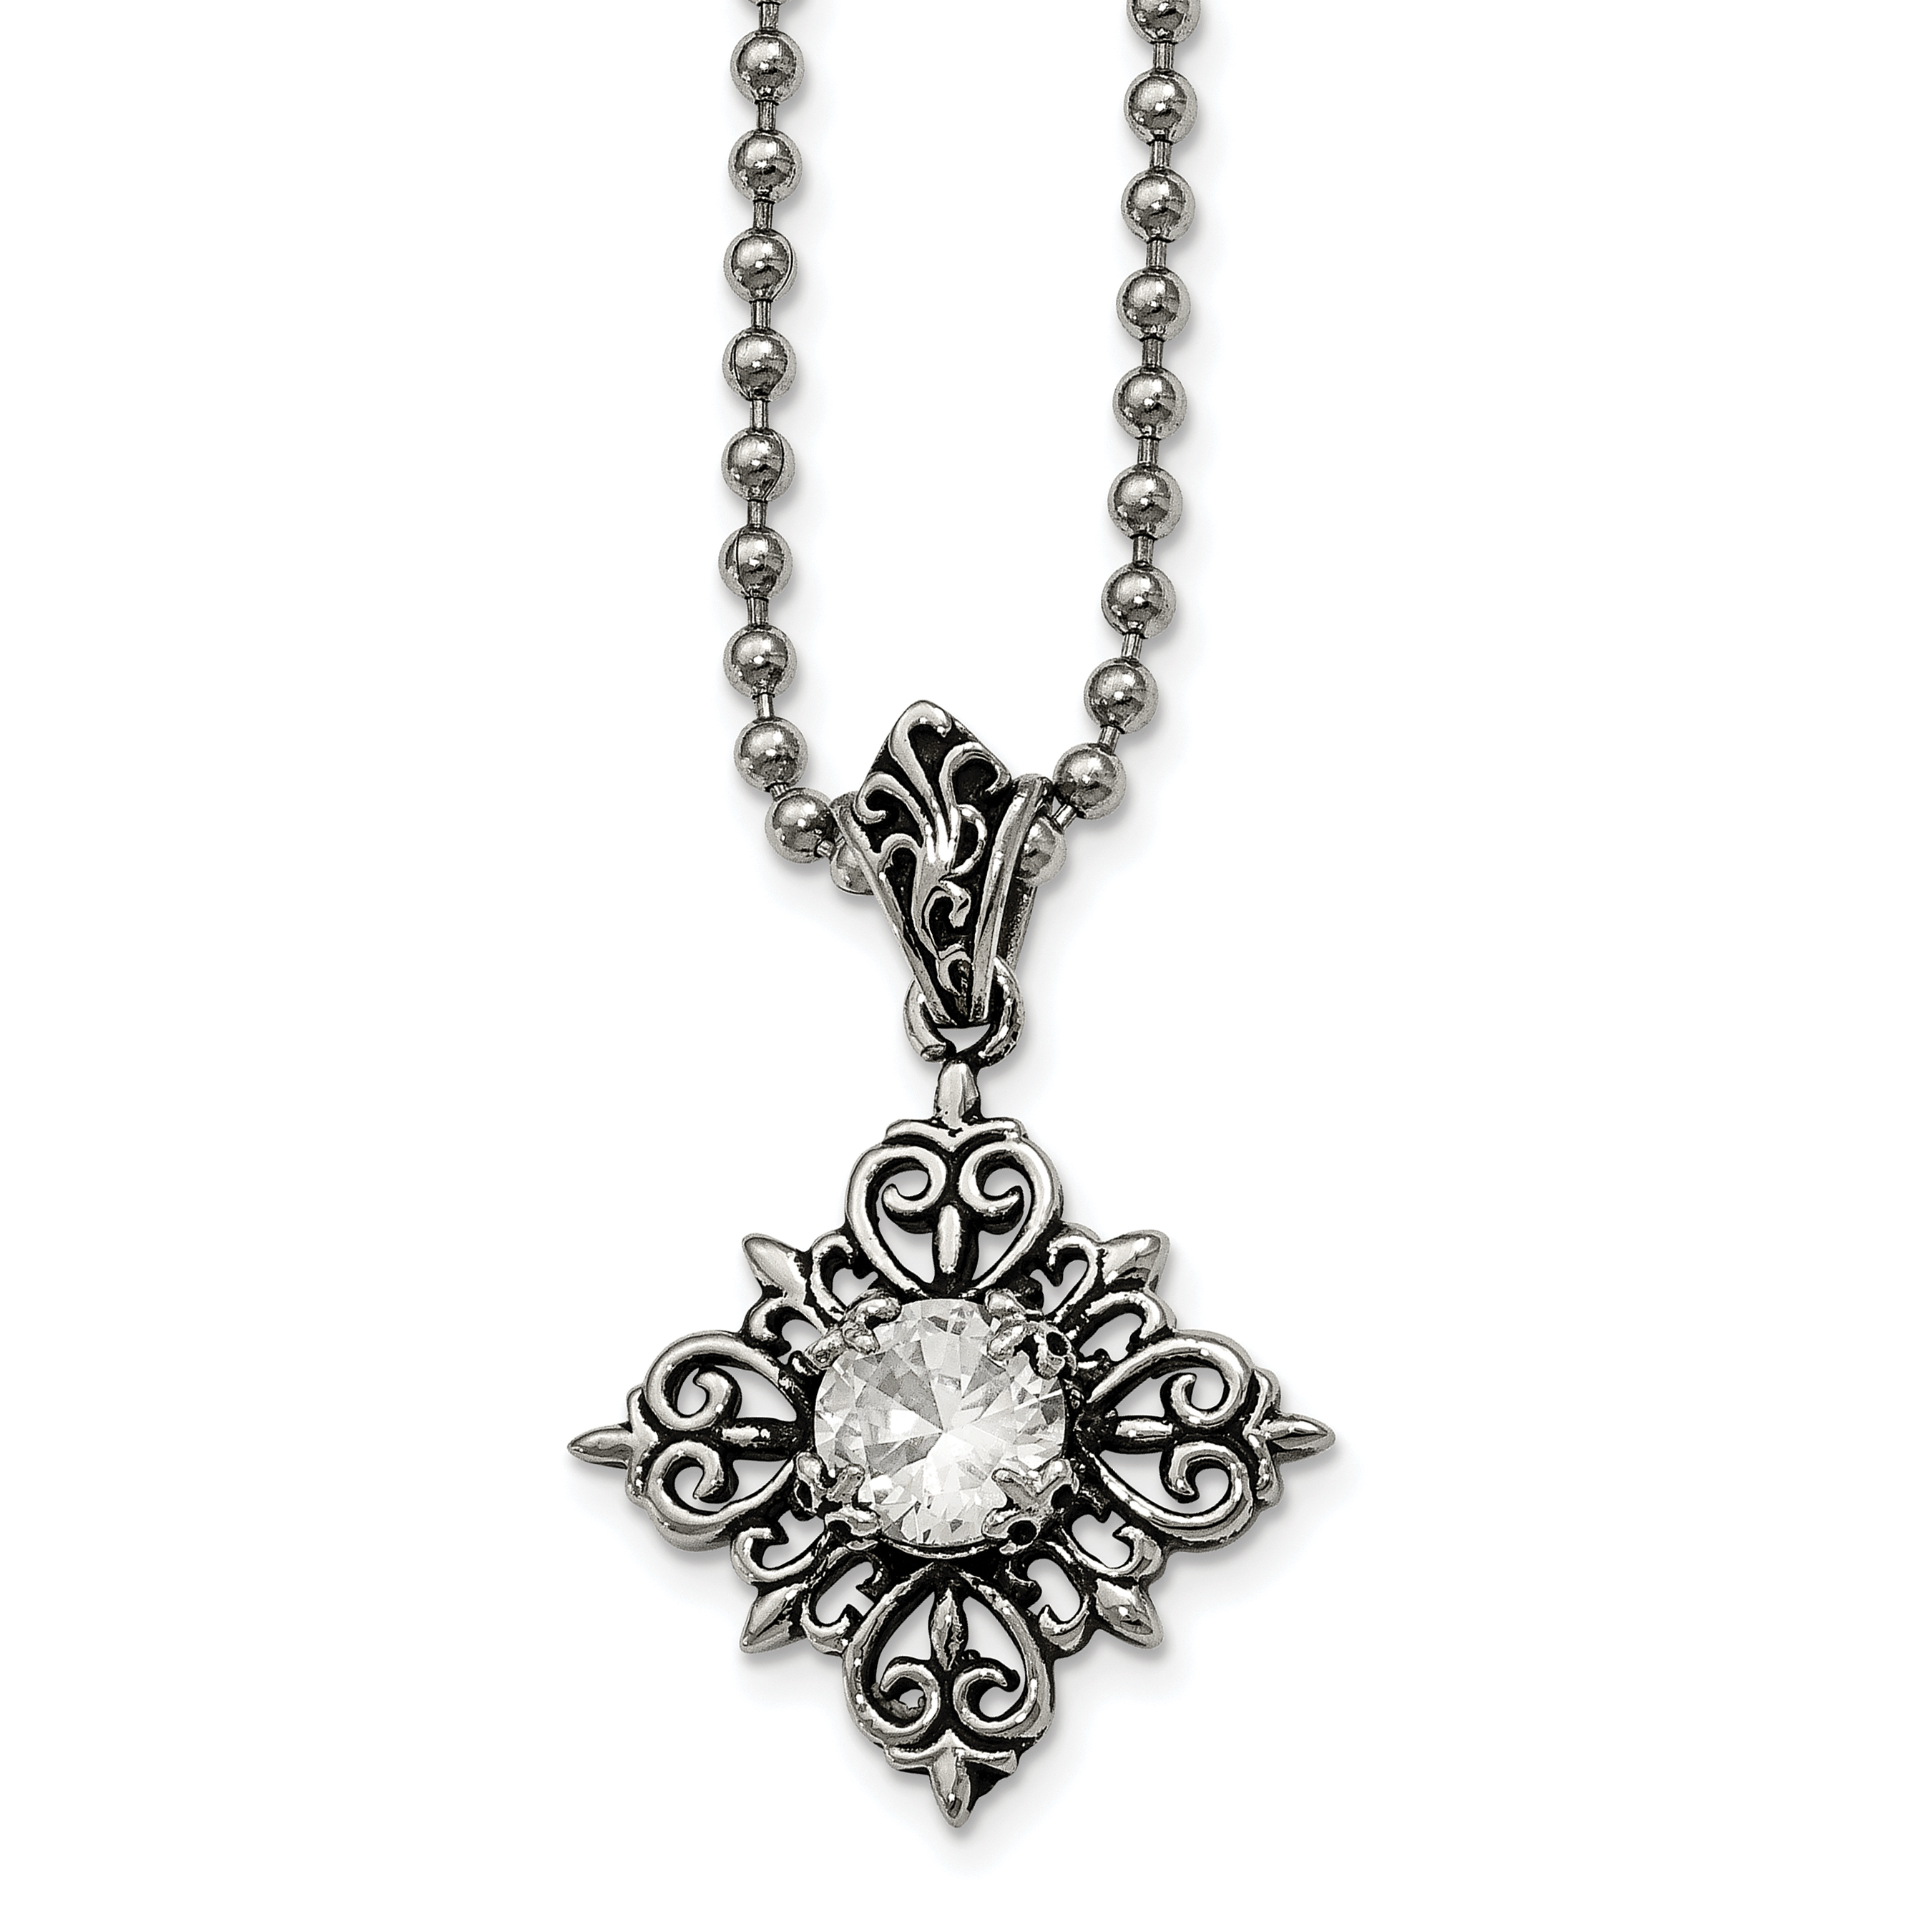 Stainless Steel Antiqued and Polished with Glass Necklace 24in - image 4 of 4